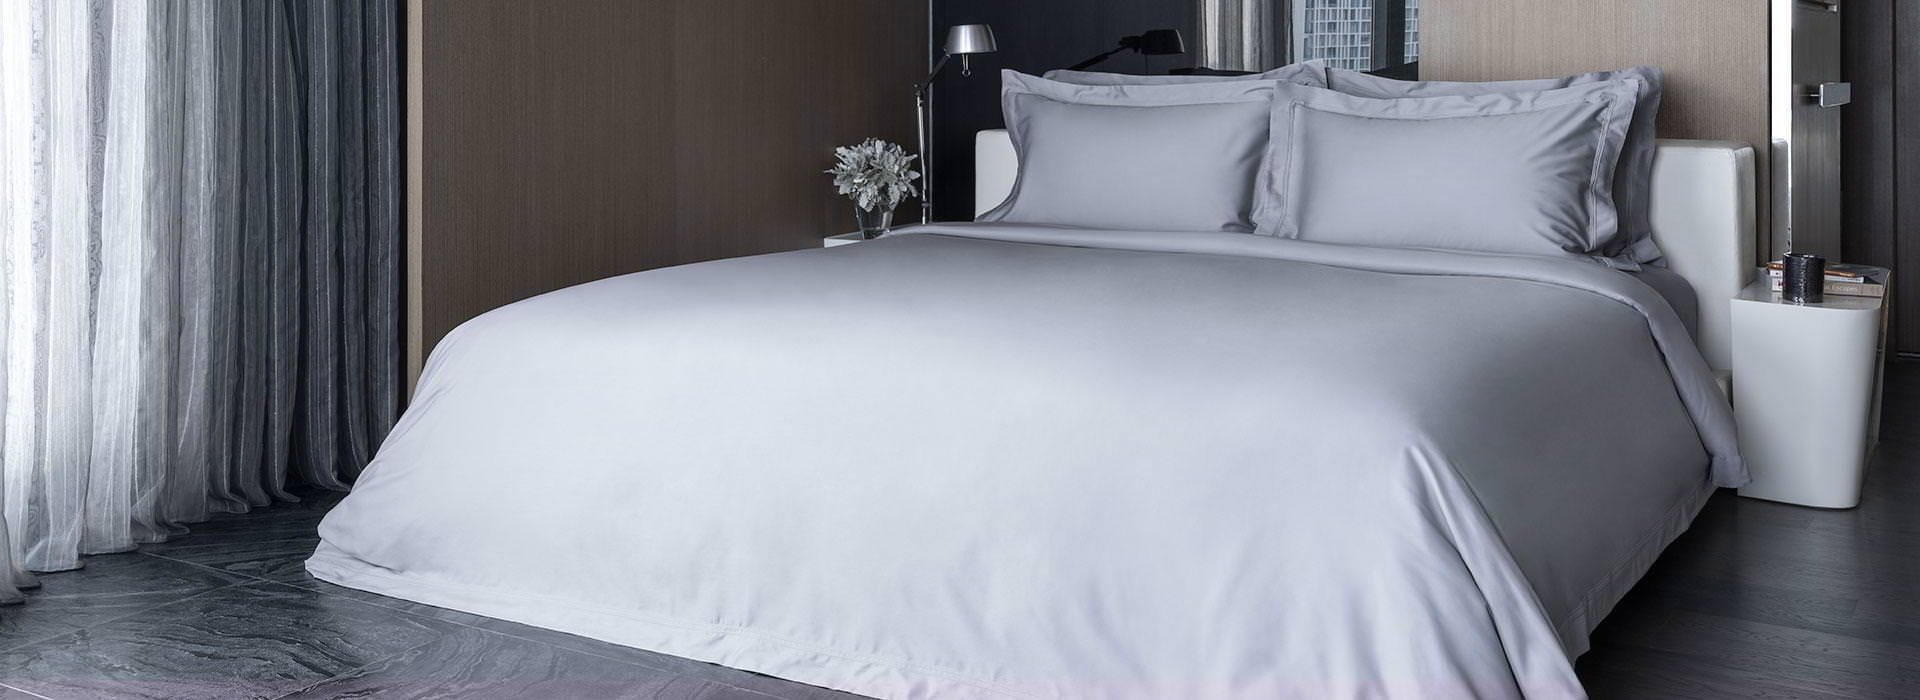 matelas hotel luxe beautiful matelas htel mousse auberge x cm with matelas hotel luxe top with. Black Bedroom Furniture Sets. Home Design Ideas